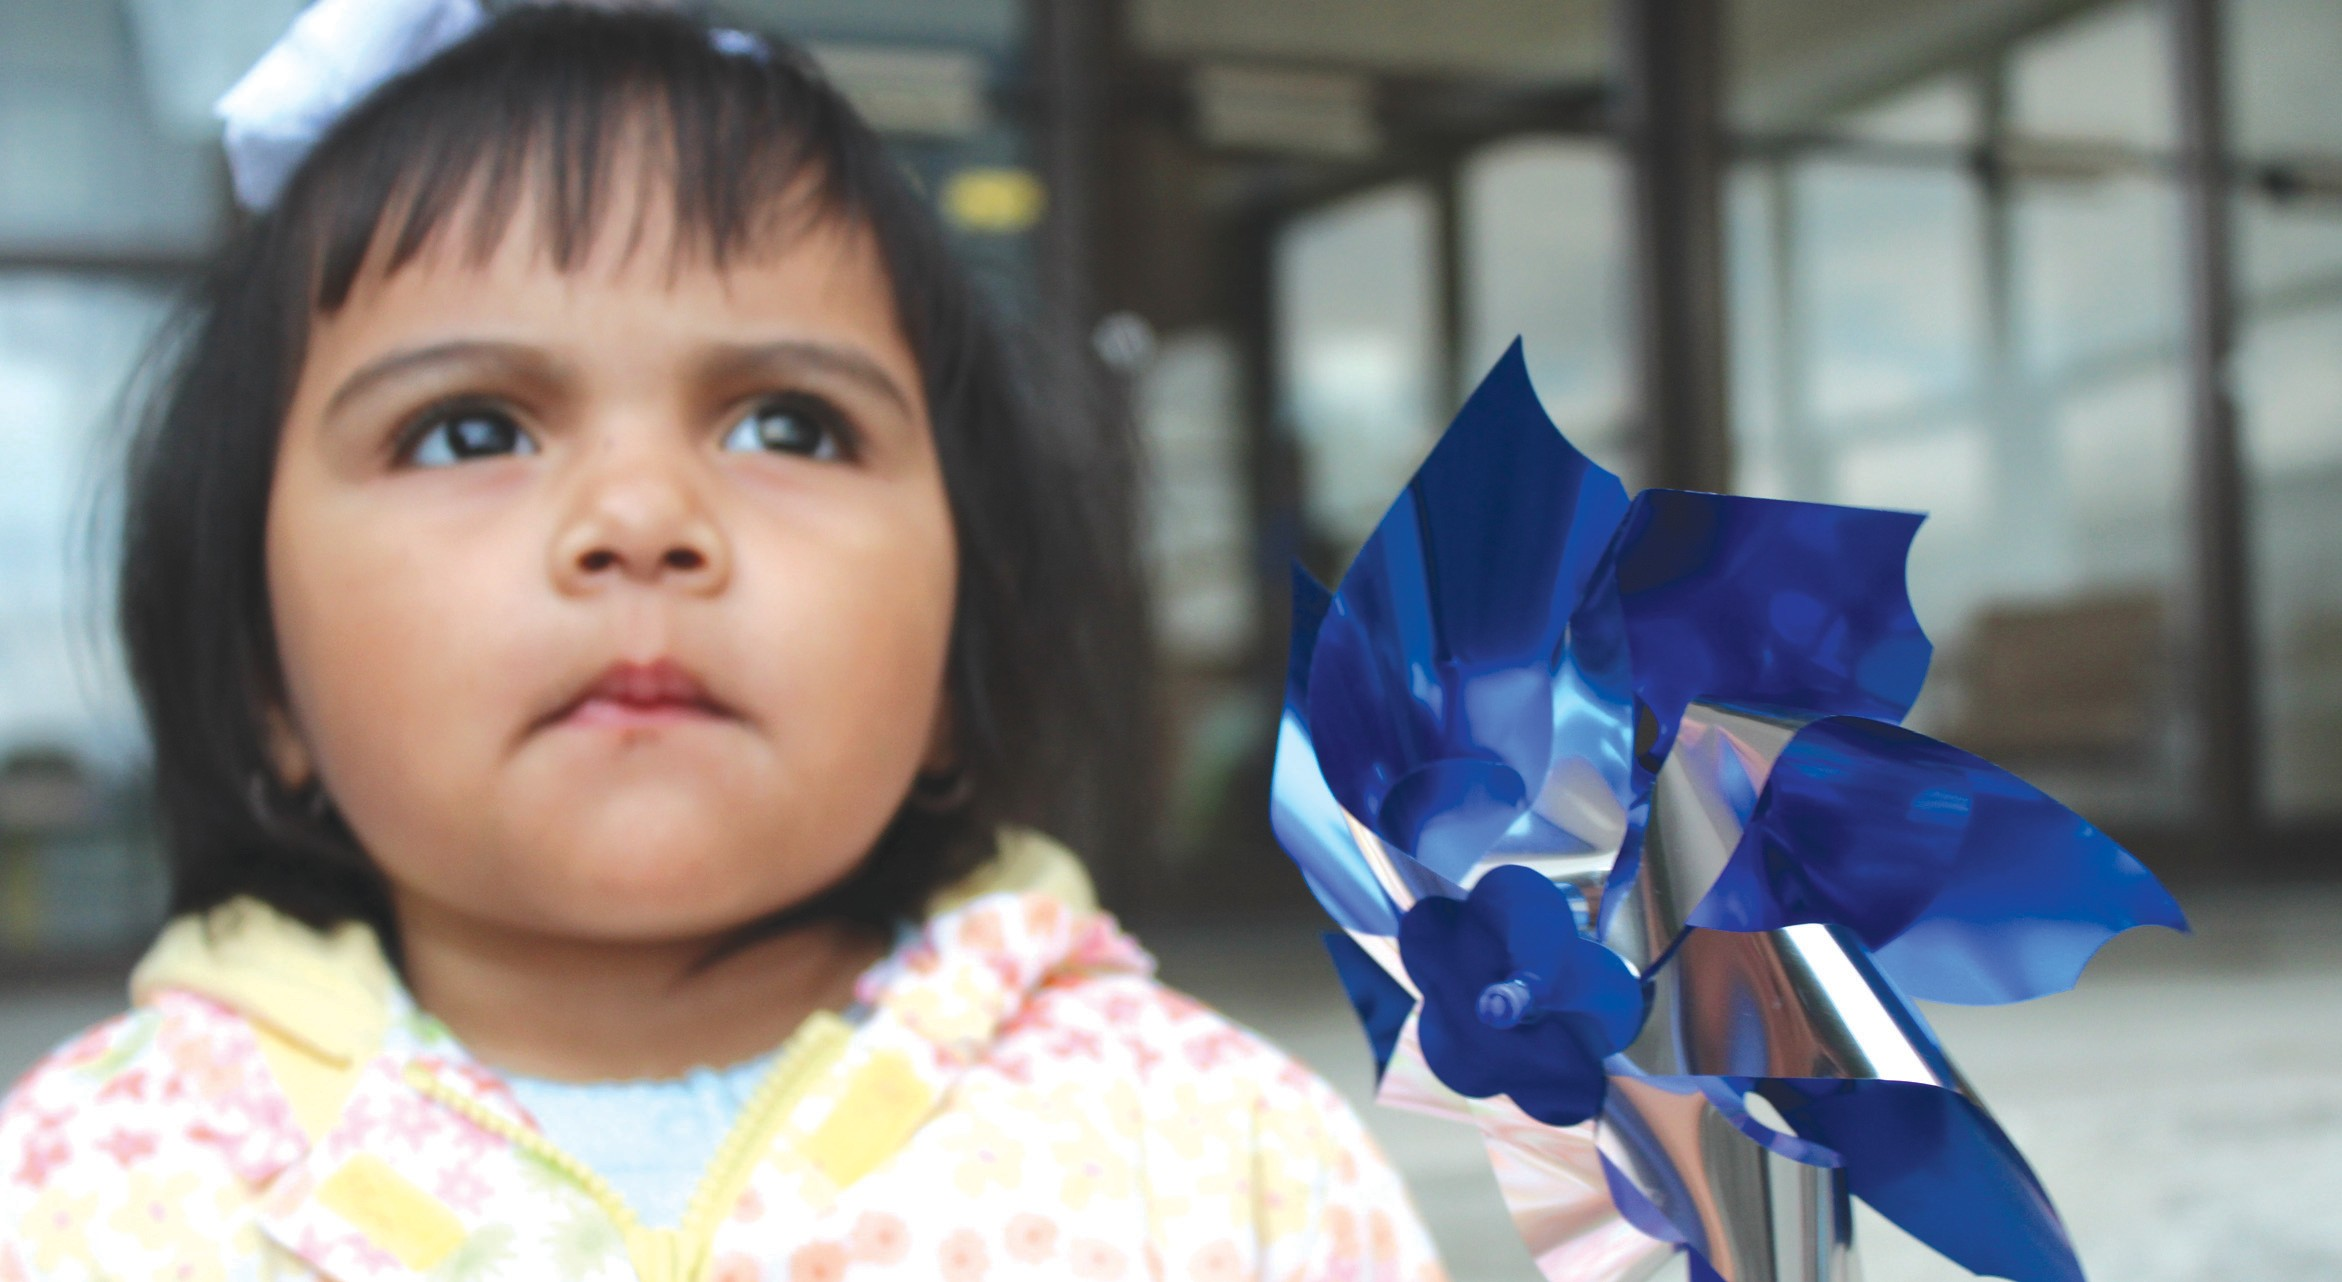 Evaly Gonzalez, age 1, holds a blue pinwheel on the steps of the Blount County Courthouse last week after she accompanied her mom, Aleyda Villegas, to the first-ever Child Abuse Awareness Walk hosted by Blount County DHR. Supporters convened at the Frank Green Building before traveling to the courthouse where Oneonta Mayor Ross Norris presented a proclamation naming April as Child Abuse Prevention and Awareness Month in the City of Oneonta. The DHR staff say this walk will continue and grow bigger next year in order to bring hope to abused children and recognize those who help them. – Nicole Singleton